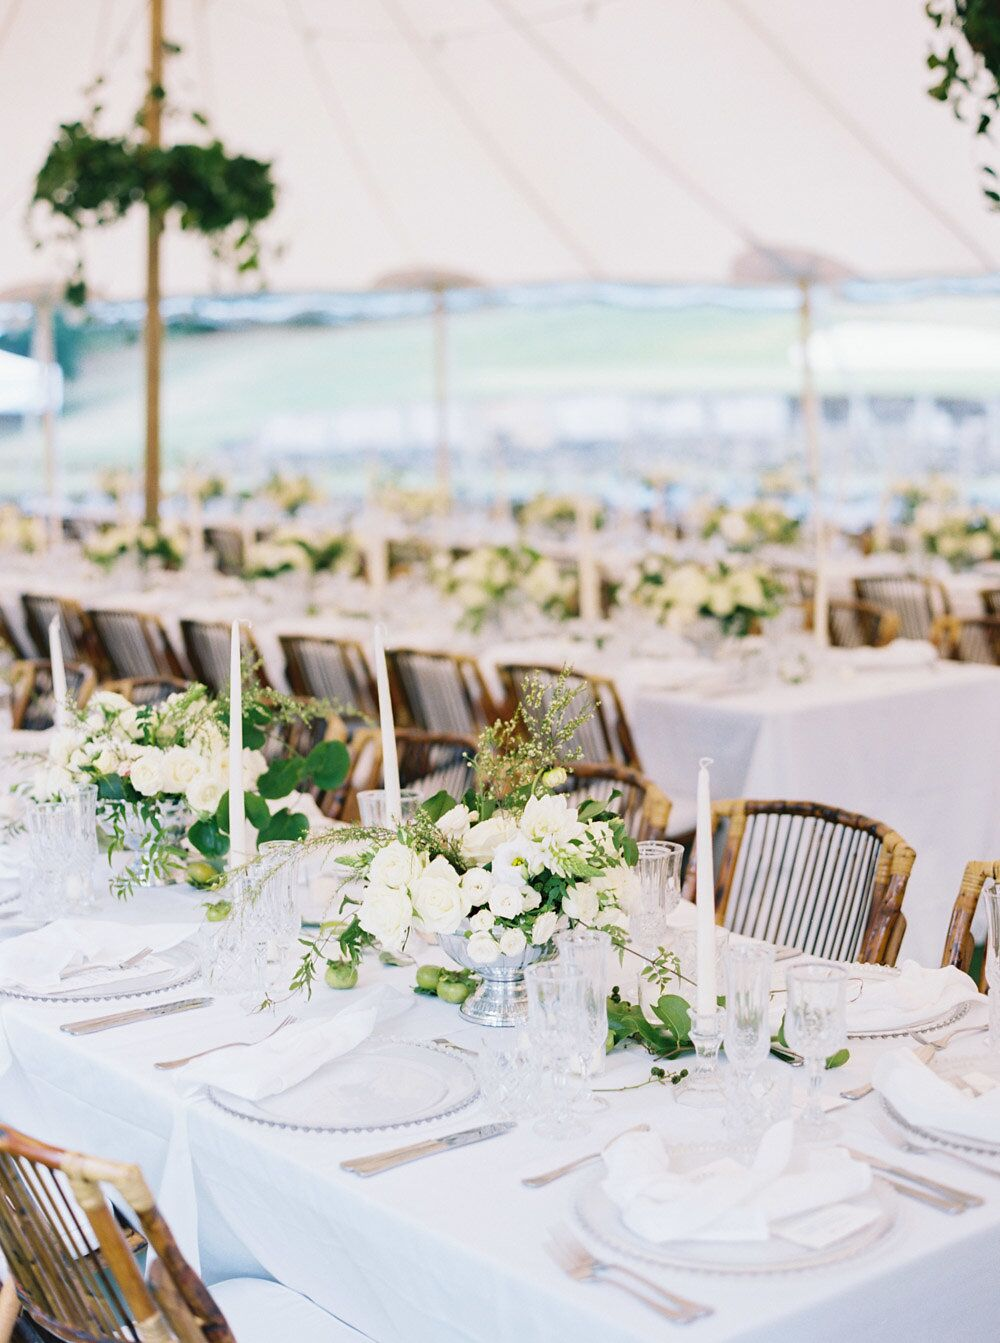 Sharni and James | Refined Opulence